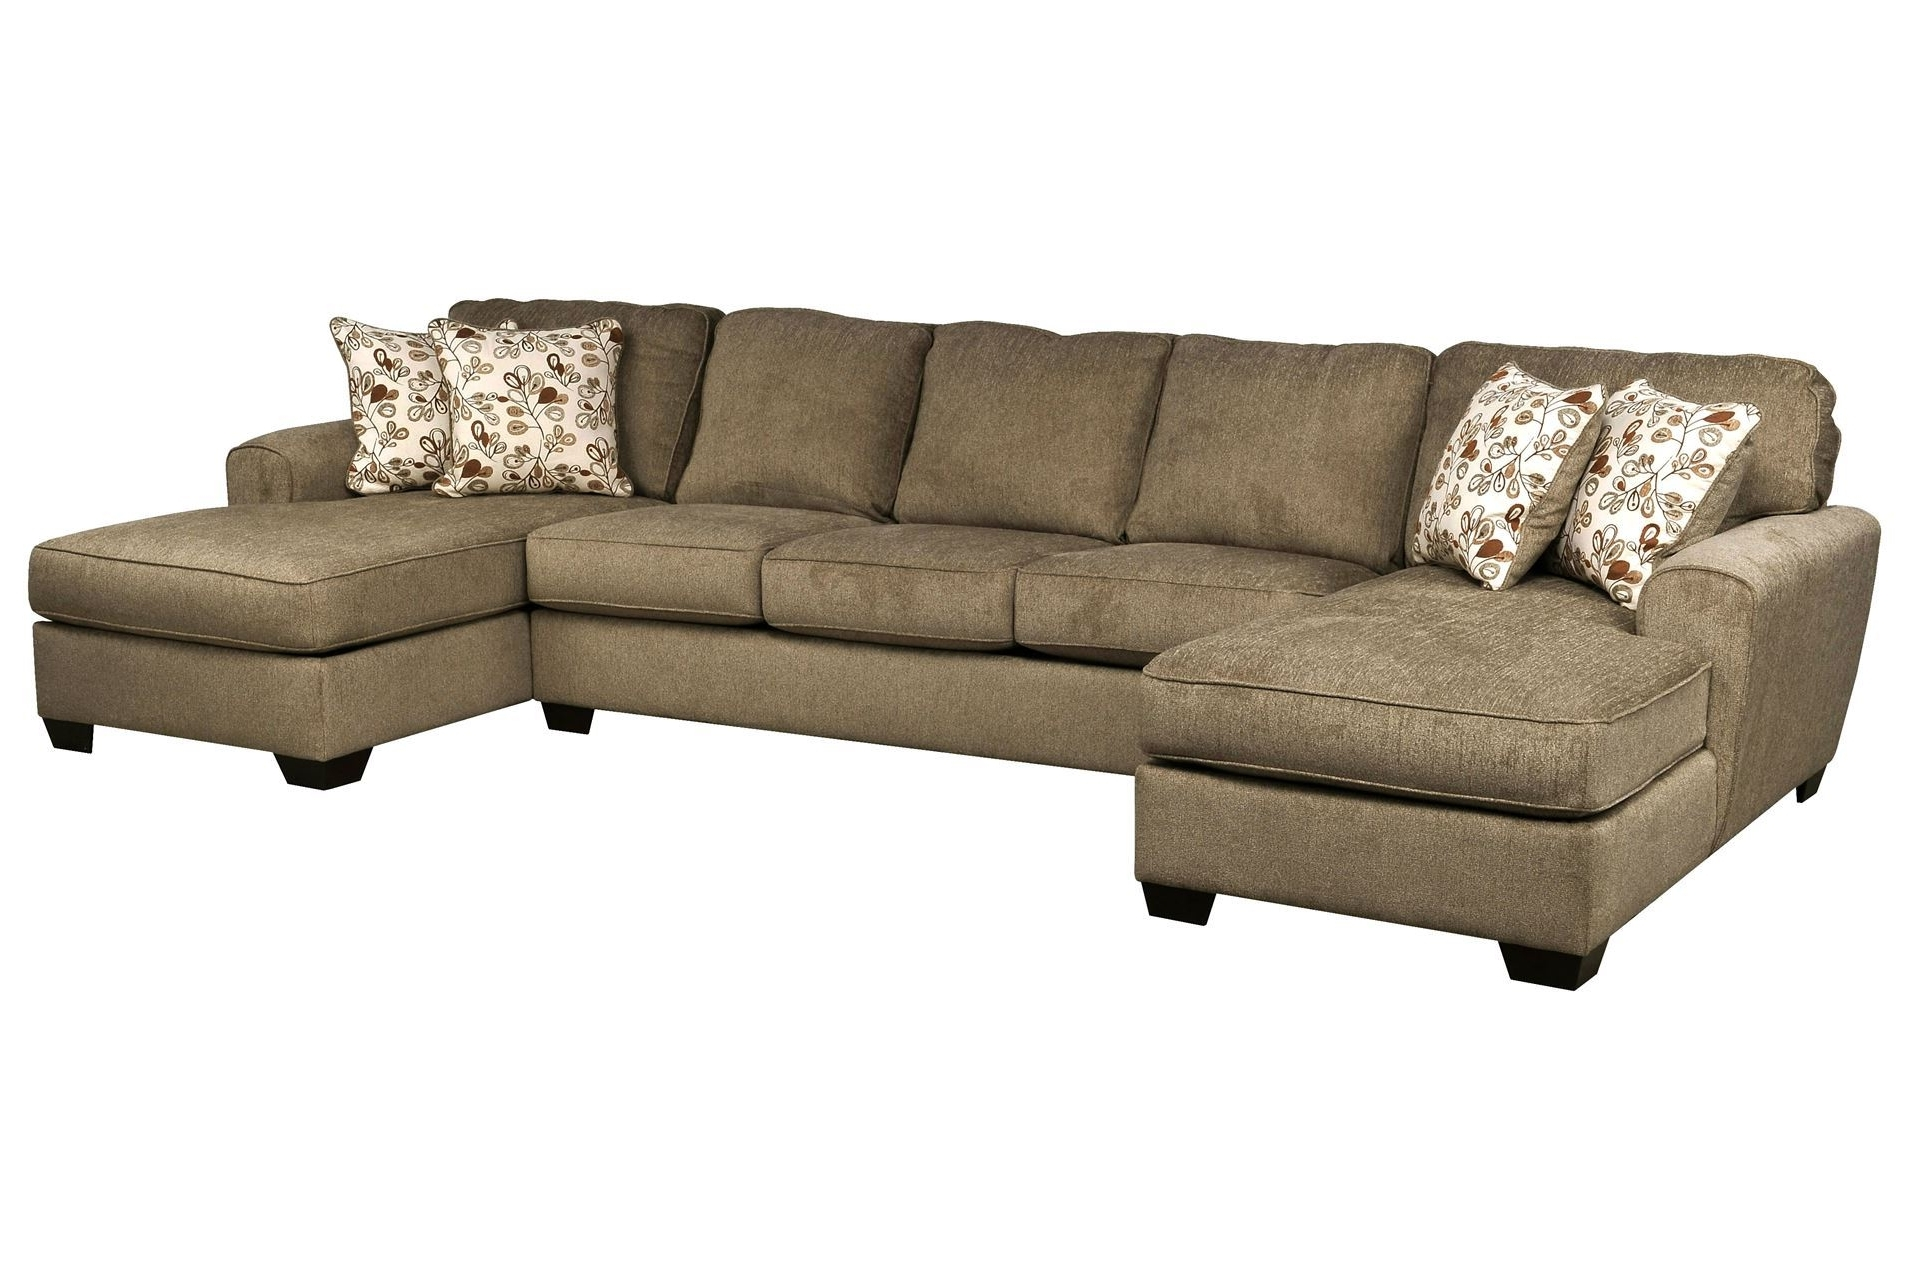 Patola Park 3 Piece Sectional W/2 Corner Chaises (View 6 of 15)